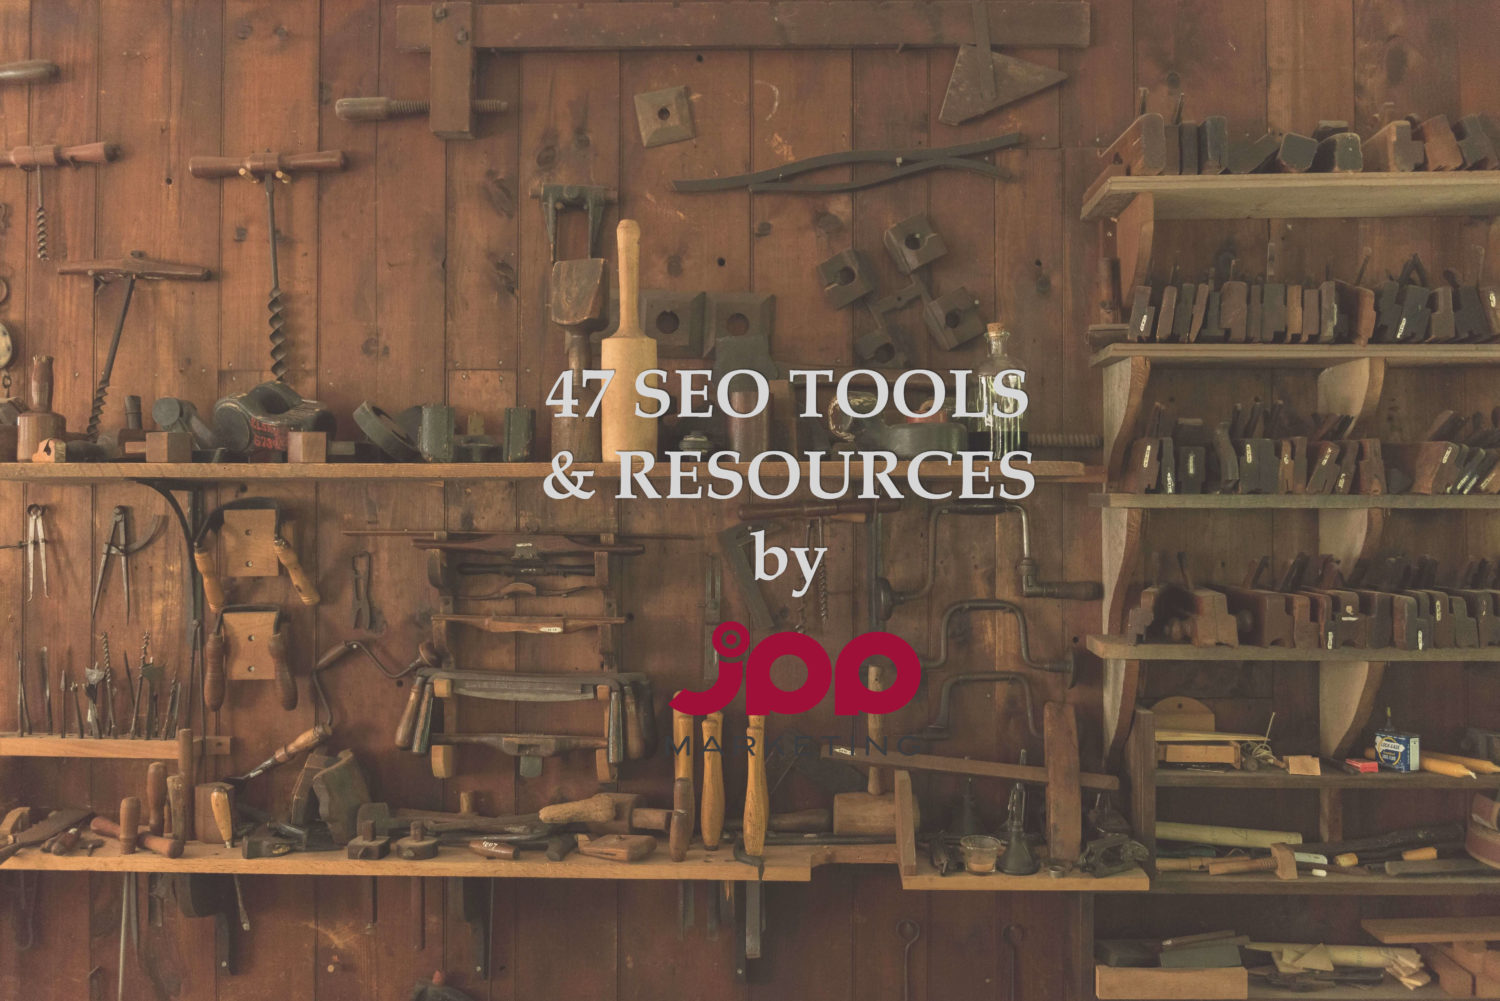 47 seo tools and resources by jpp marketing